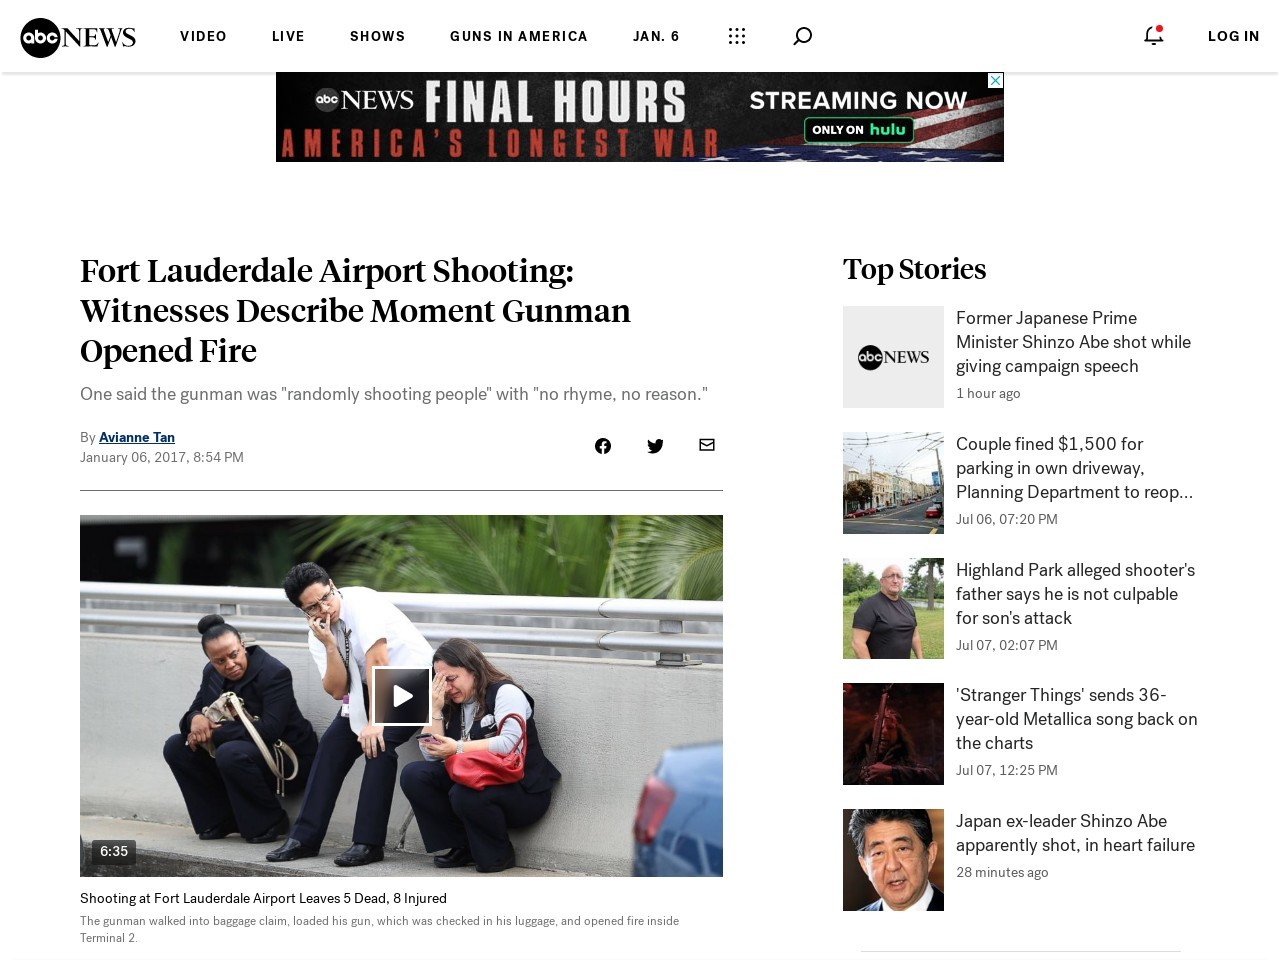 Witnesses Describe Screaming, 'Trail of Blood' After Gunman Opened Fire at Airport